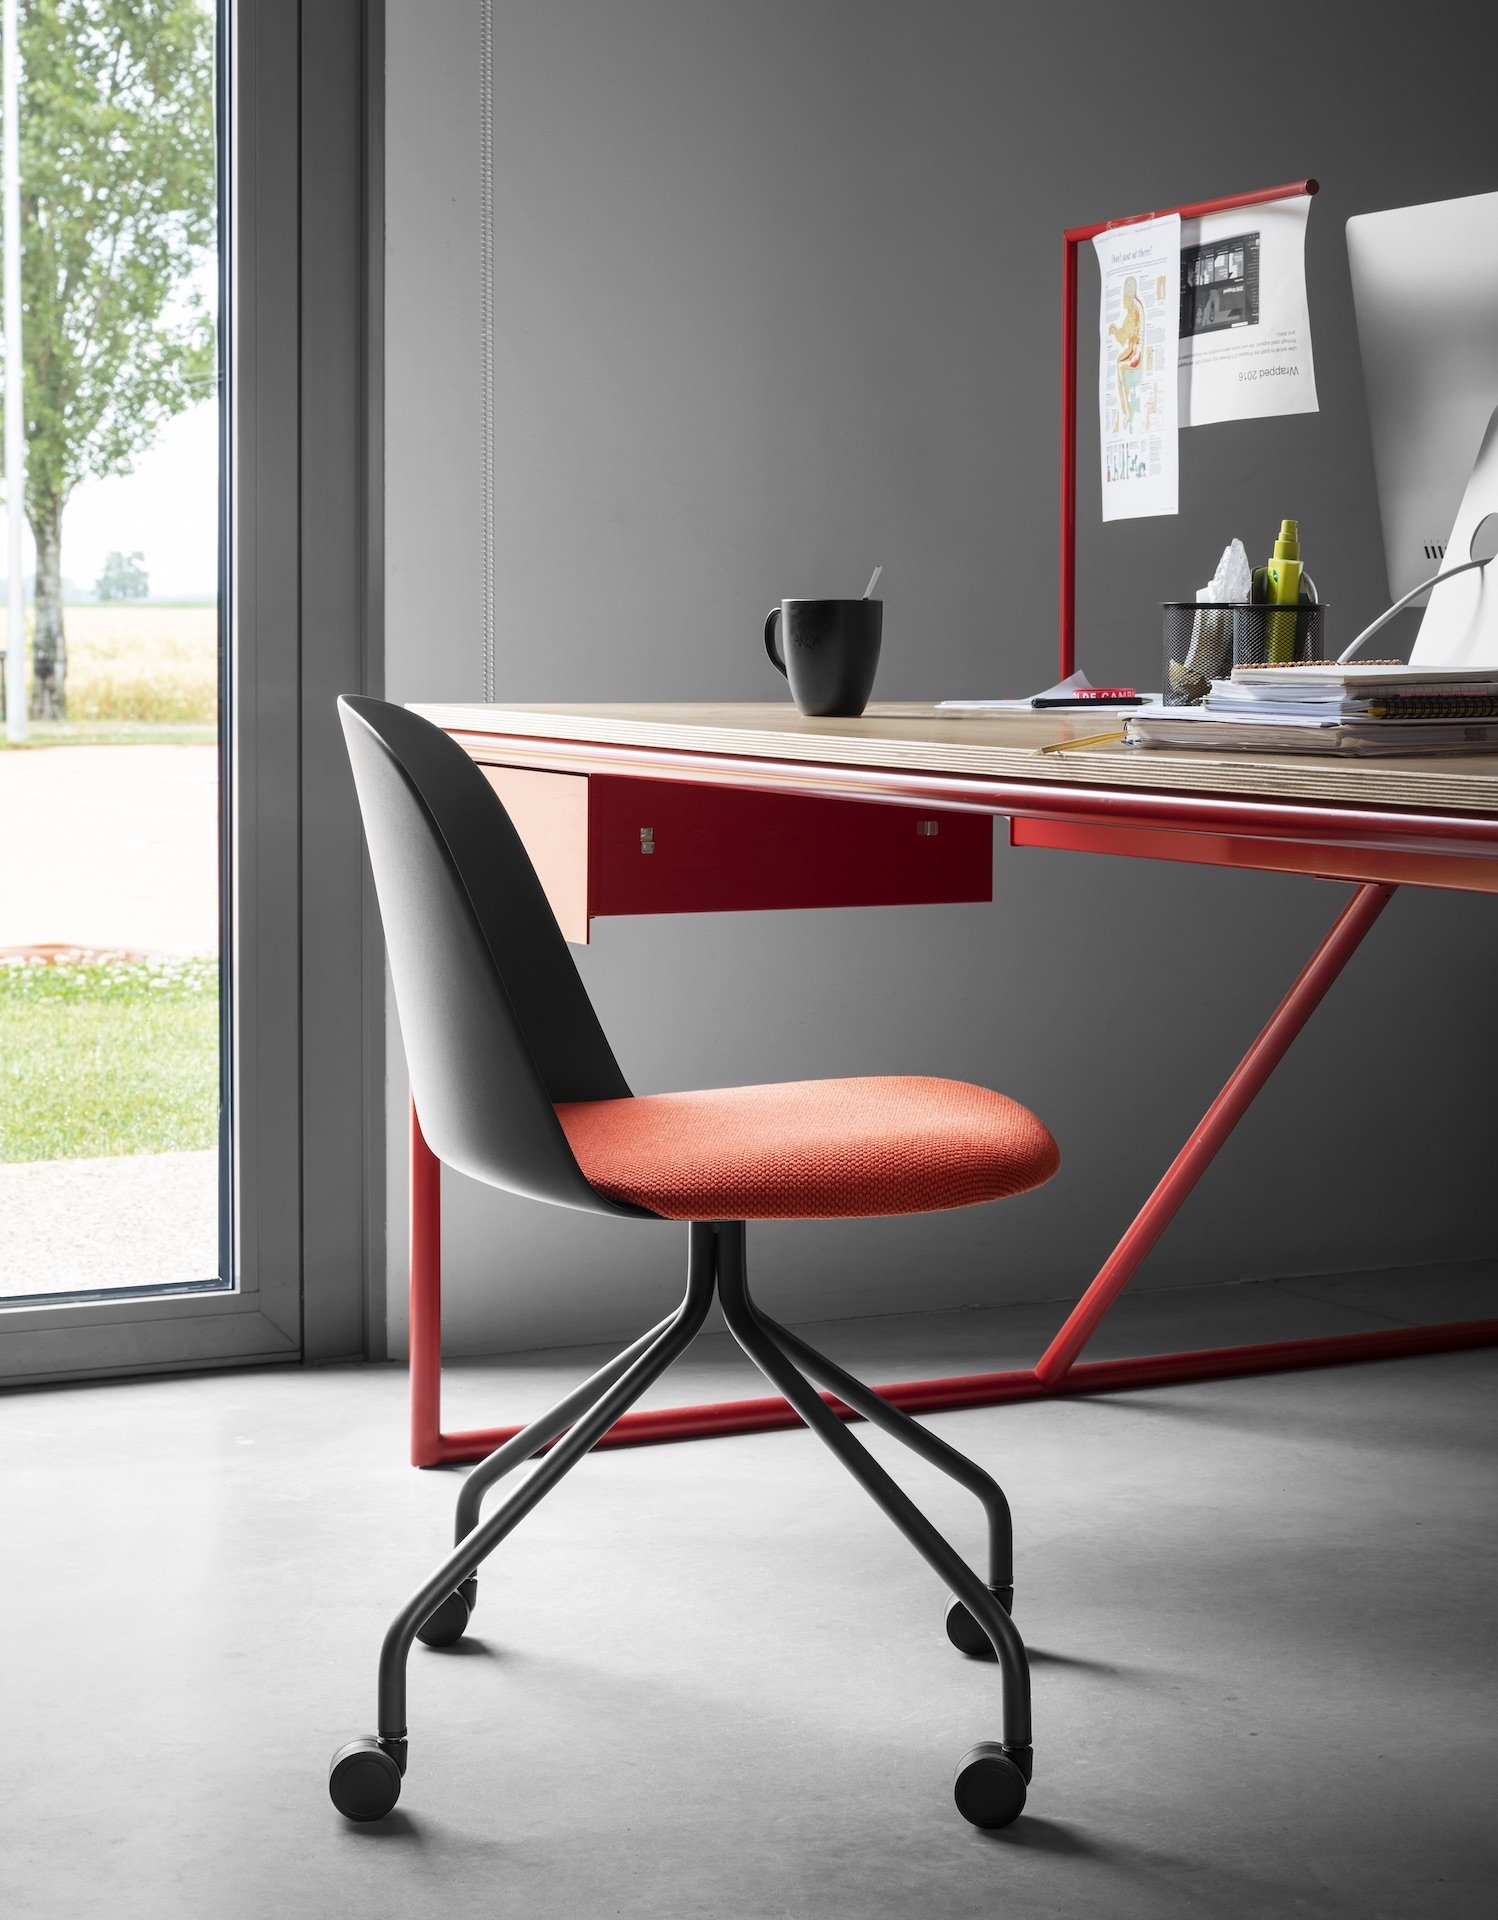 Mariolina Chair from Miniforms, designed by E-ggs